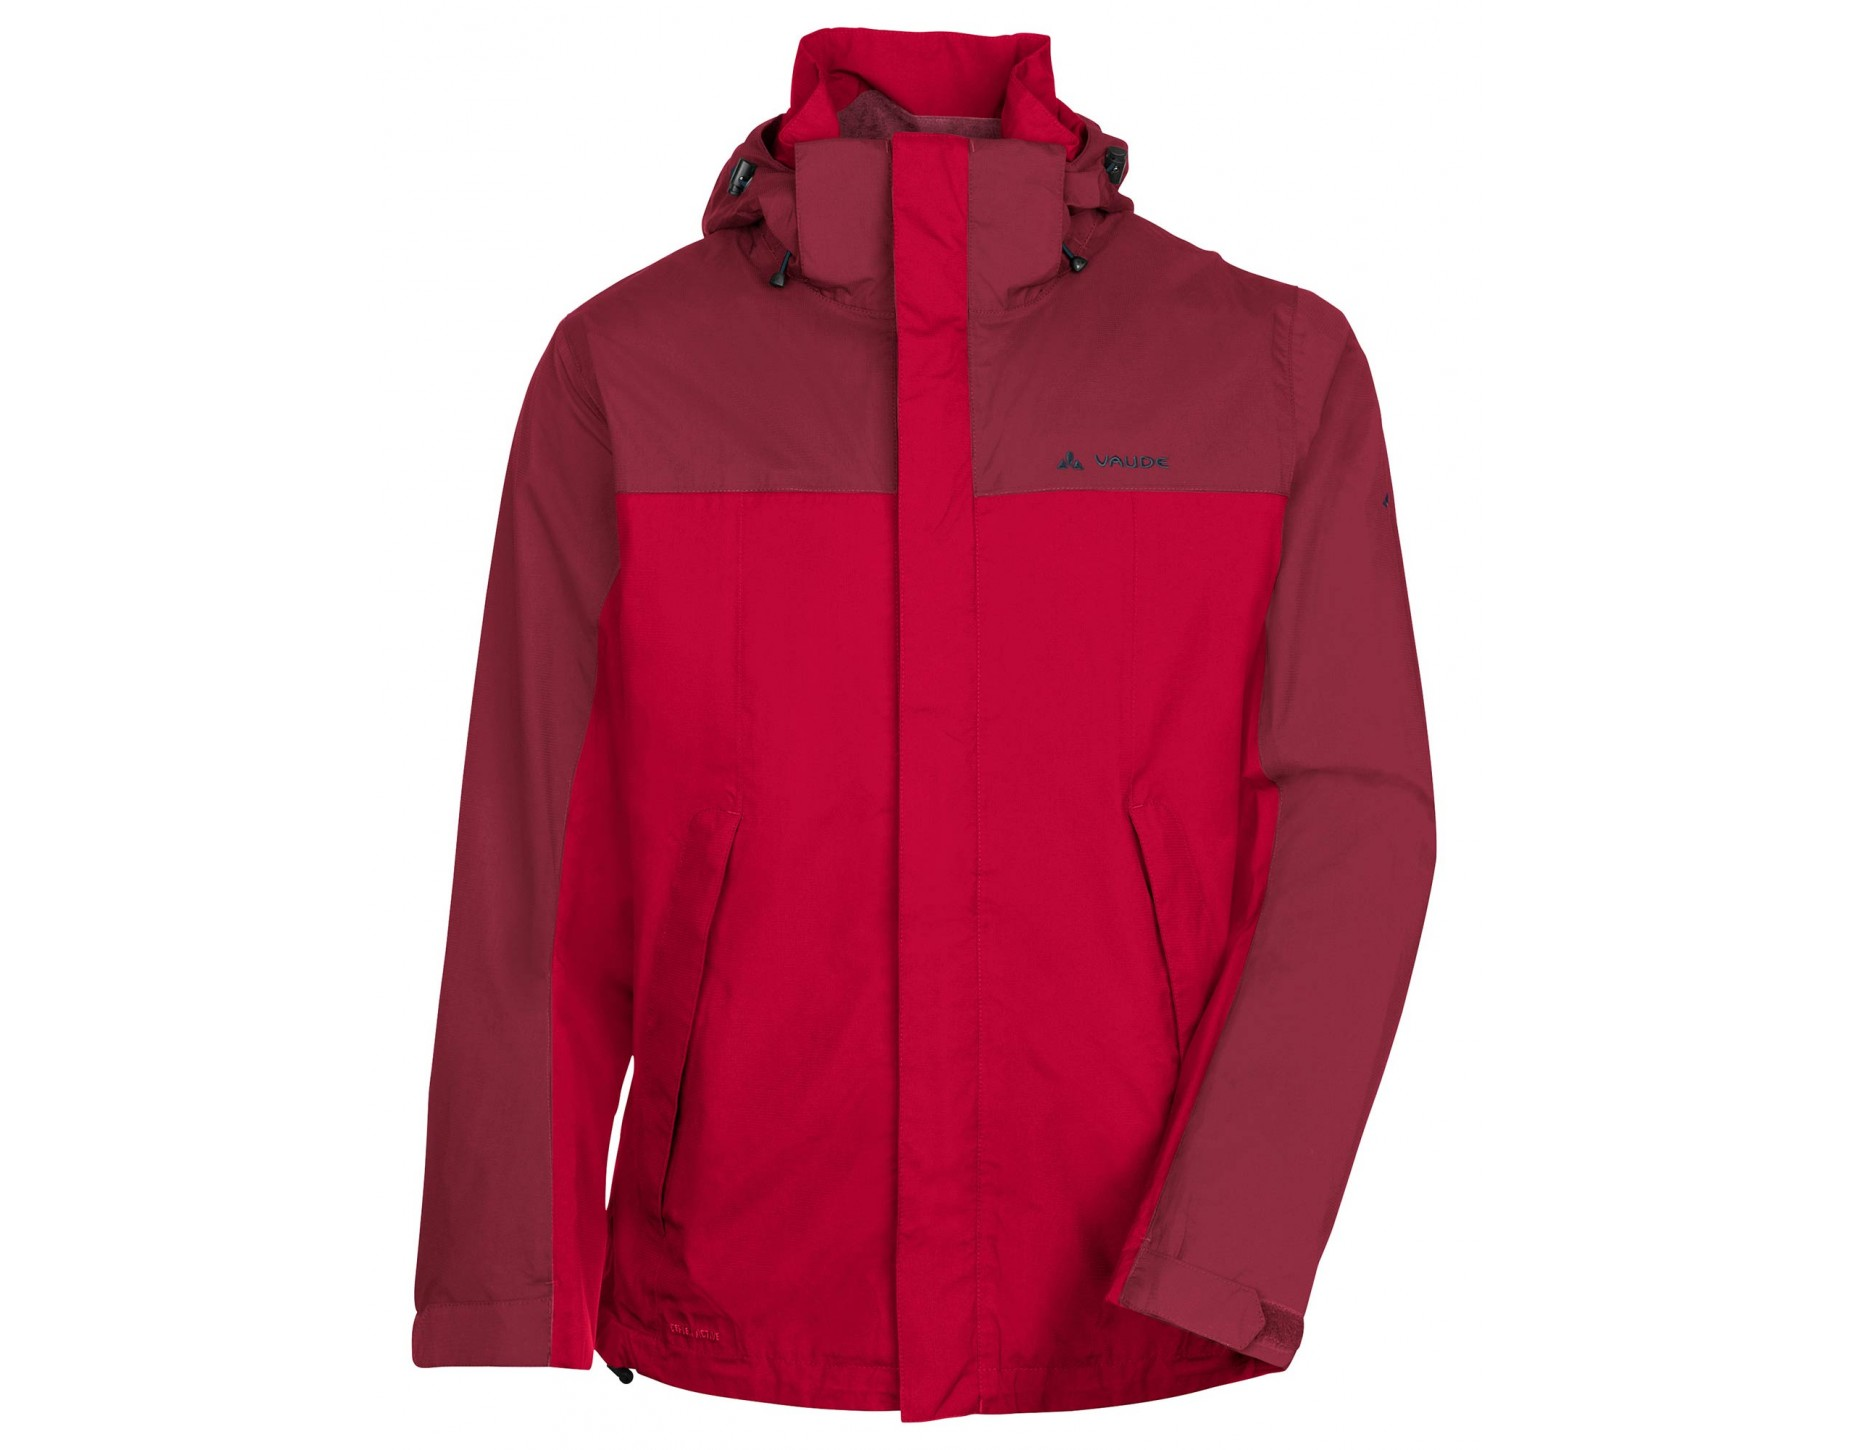 red jacket hindu personals Find the hottest shiny down jacket porn videos on the planet at thumbzilla how do we know they're the hottest because the zilla is the fucking king.